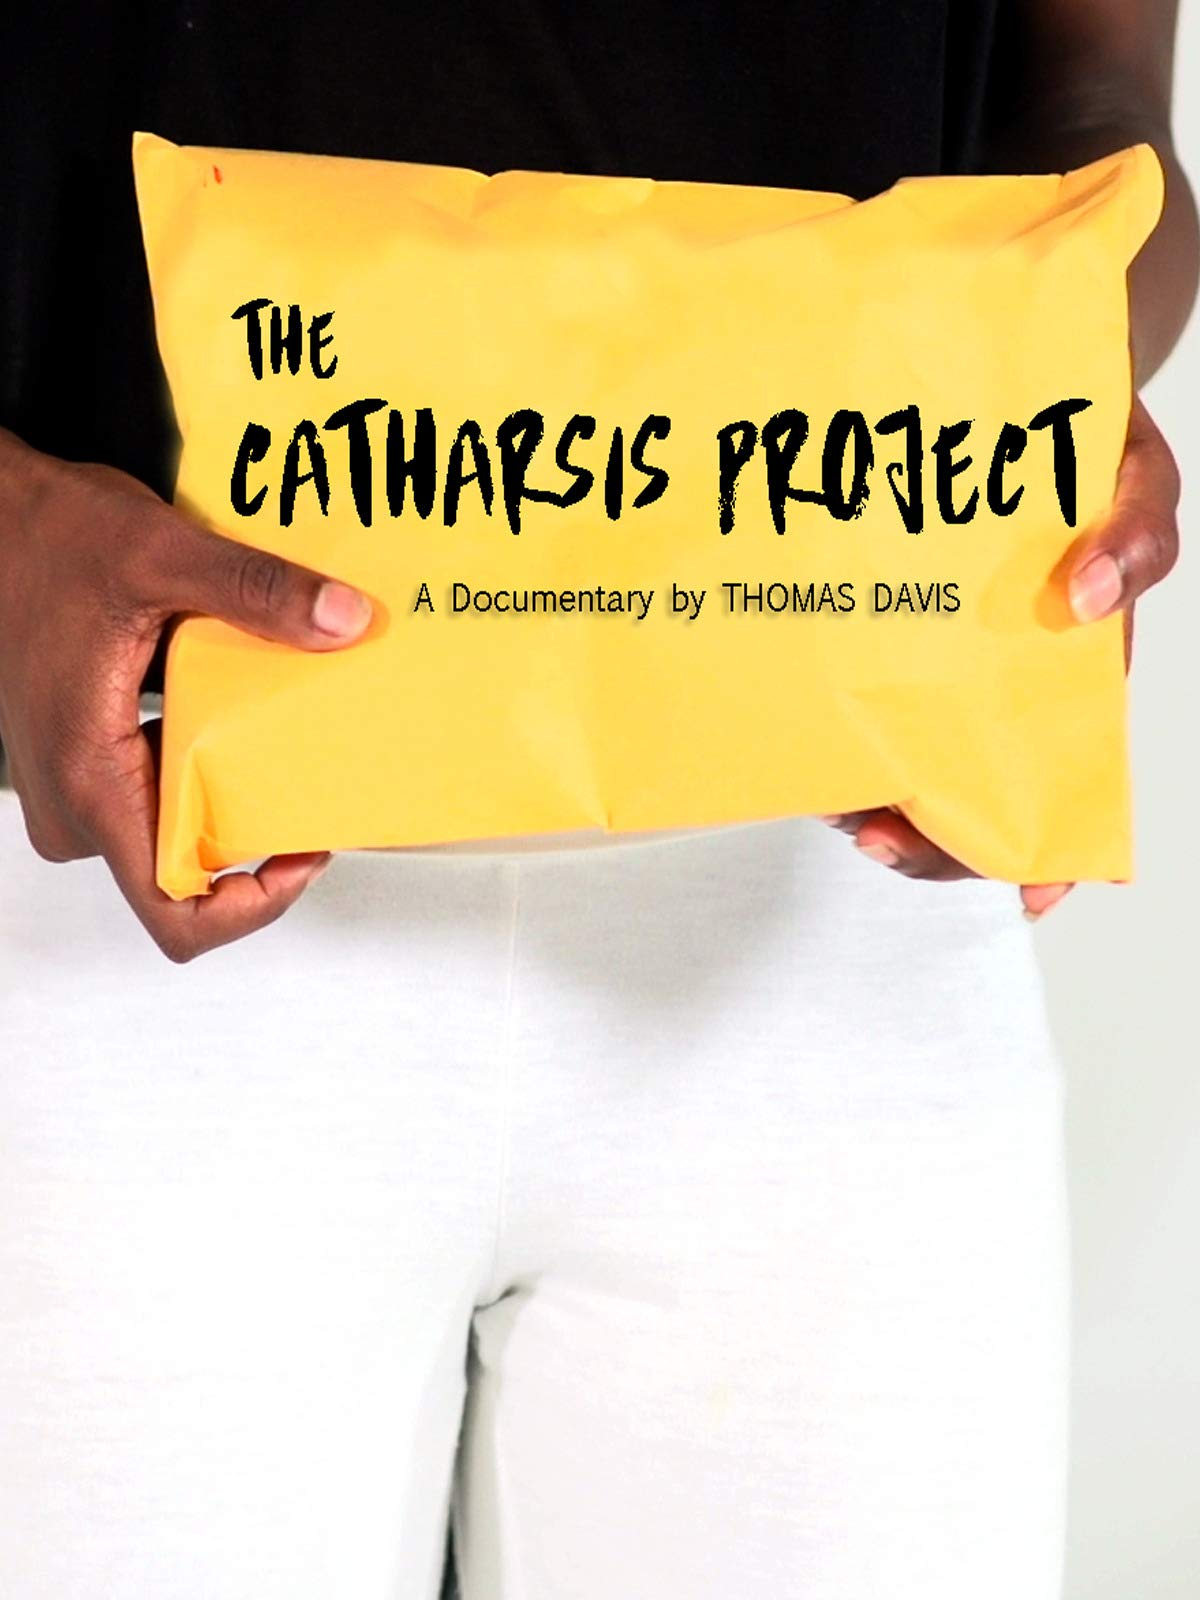 The Catharsis Project